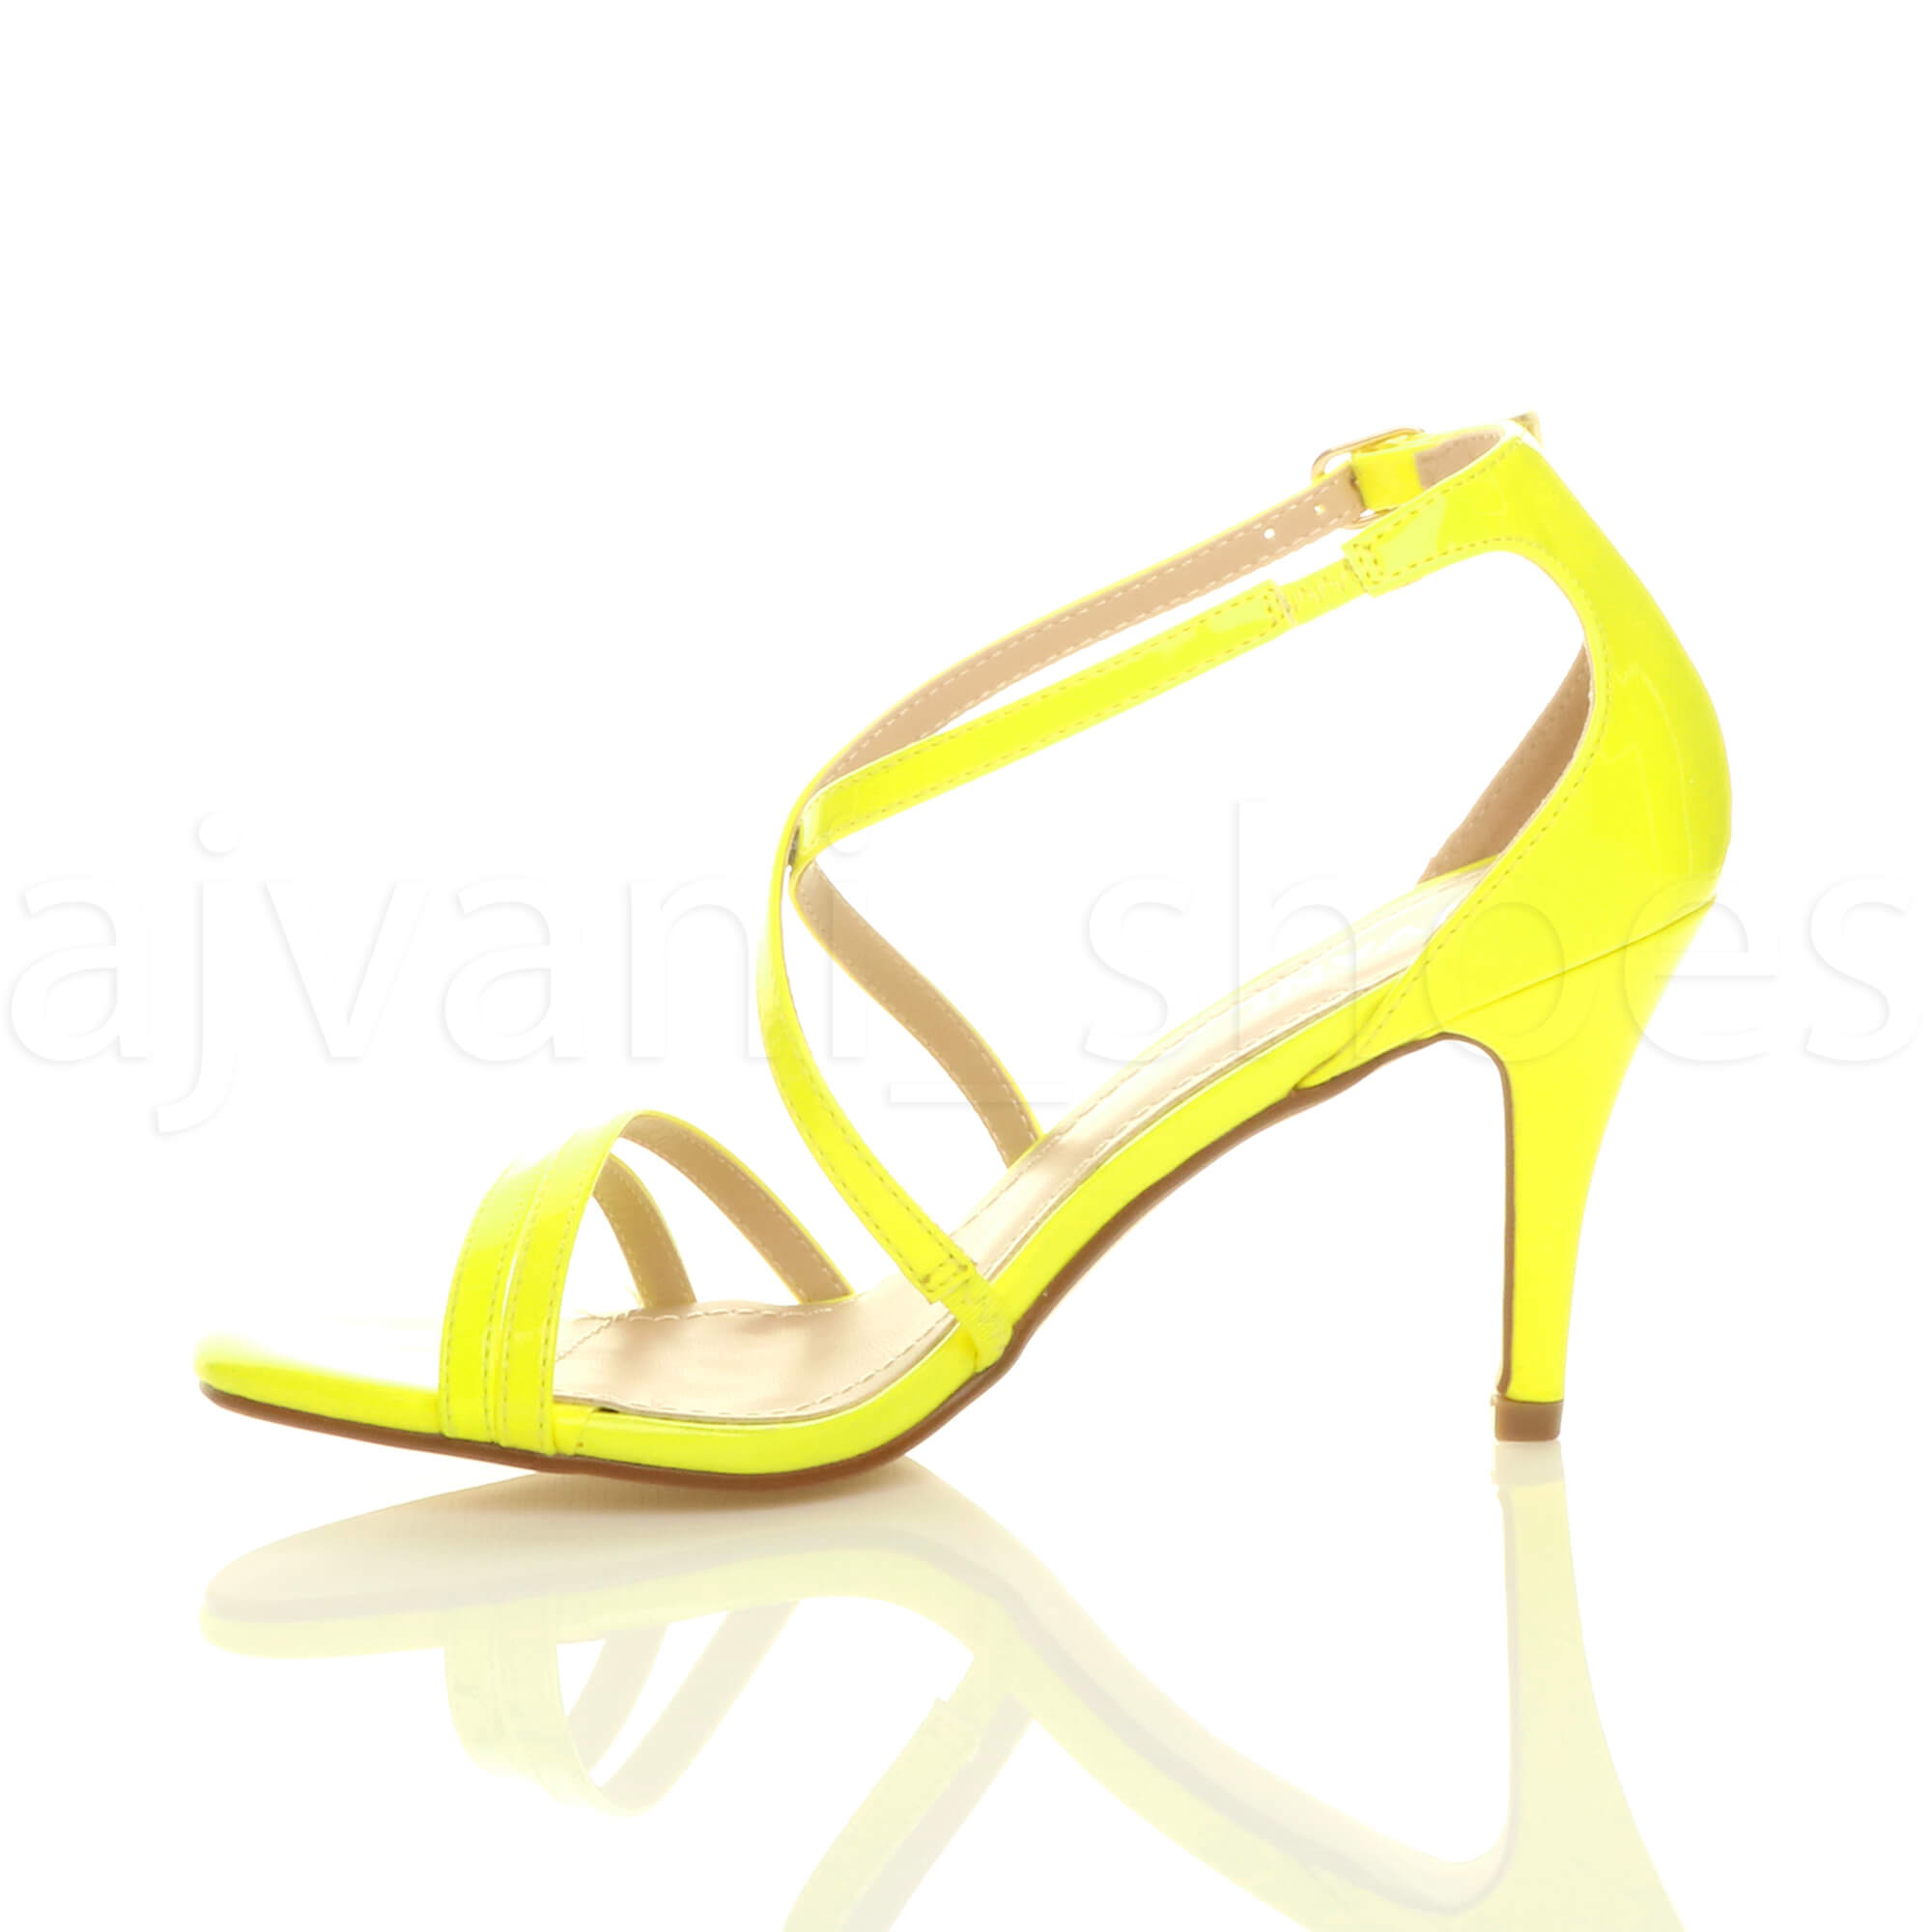 WOMENS-LADIES-MID-HIGH-HEEL-STRAPPY-CROSSOVER-WEDDING-PROM-SANDALS-SHOES-SIZE thumbnail 102